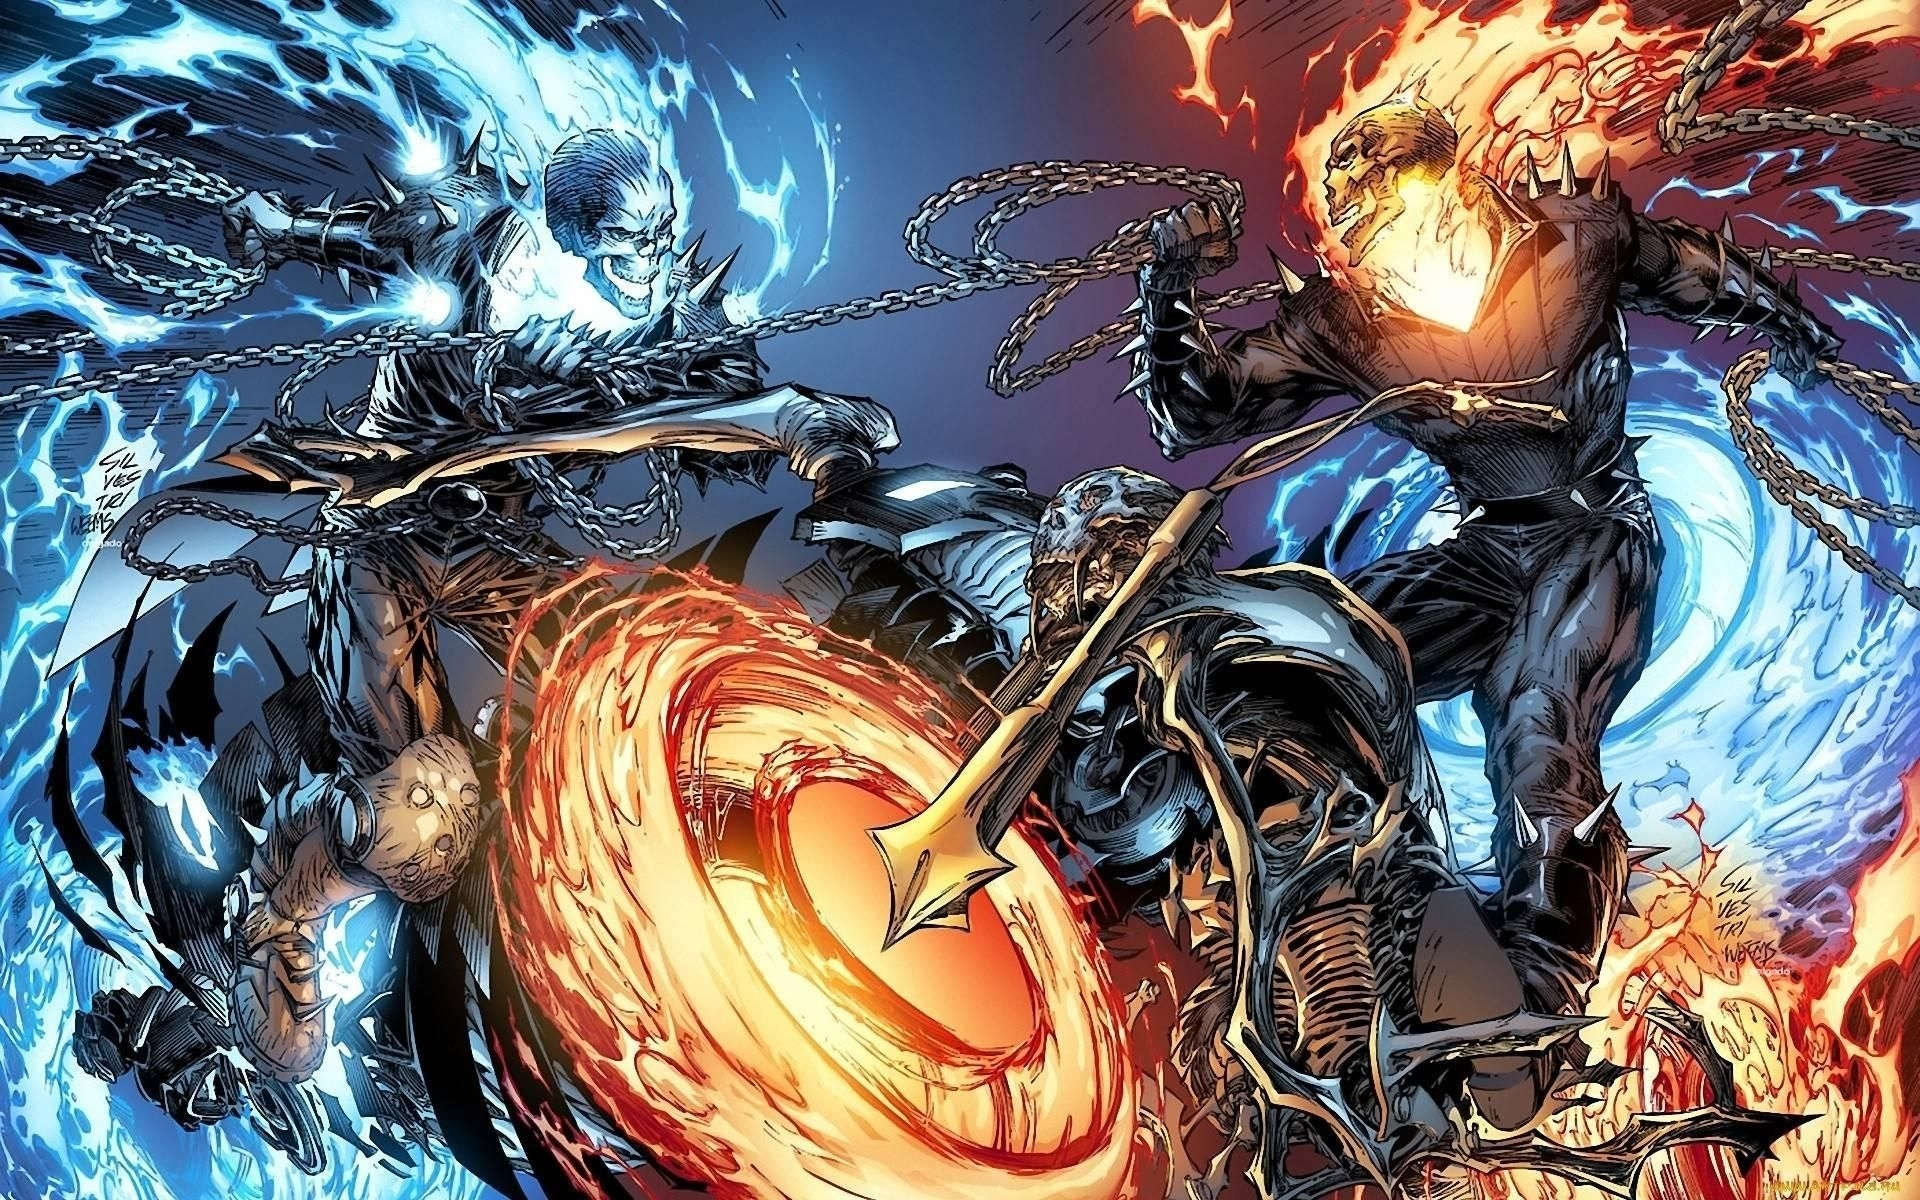 3 ghost rider photos for mobile and desktop